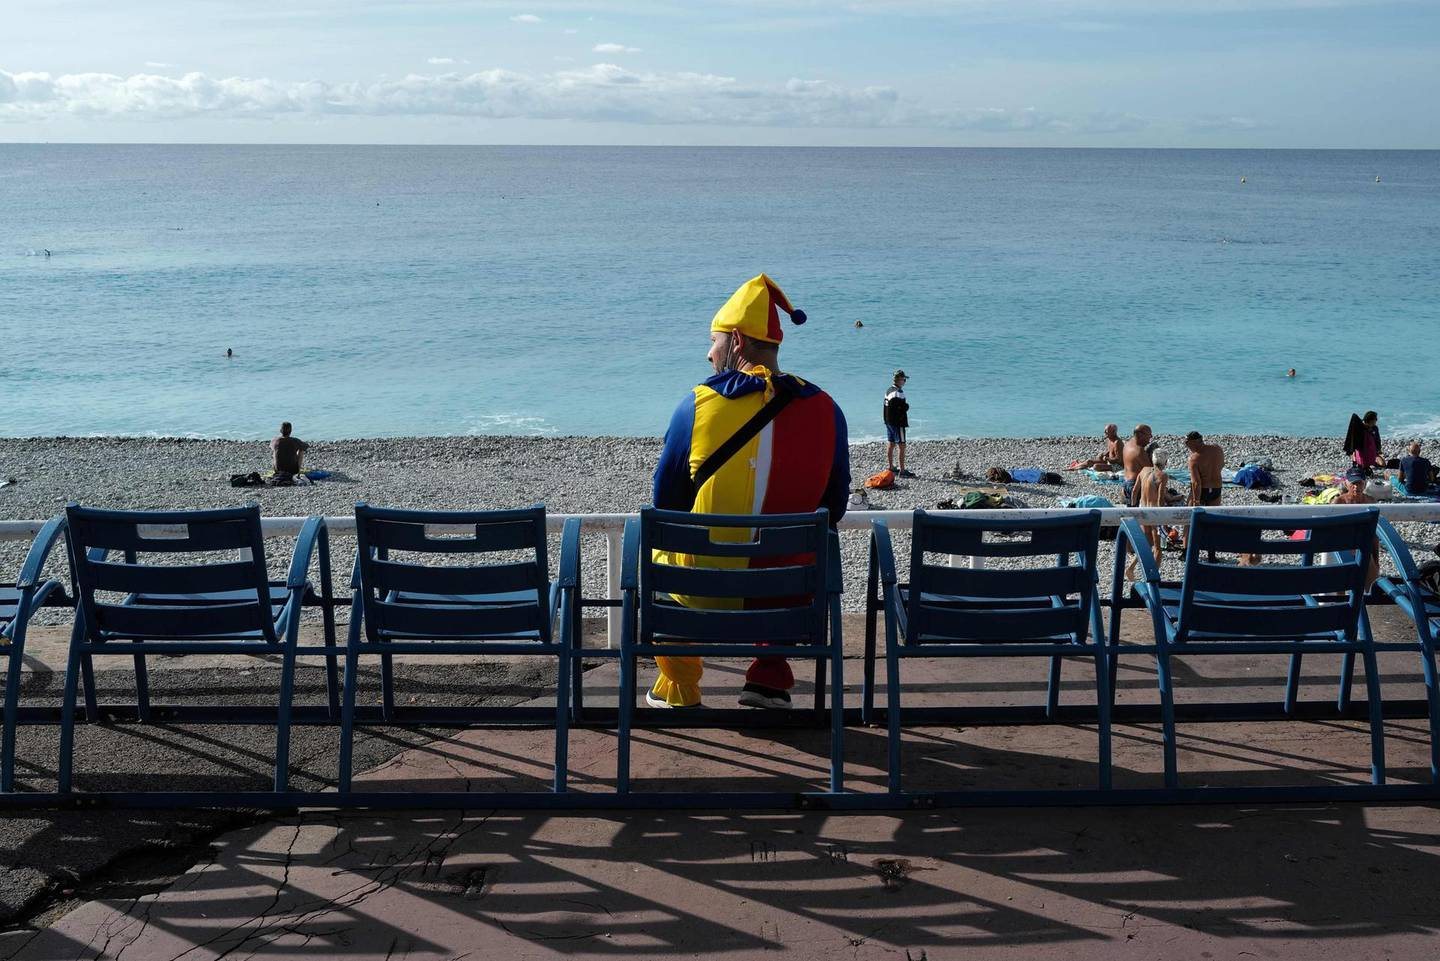 """A man dressed in a clown's outfir looks on as he sits on the """"Promenade des angalais"""" along the Mediterranean sea, in the French riviera city of Nice, on September 29, 2020. / AFP / Valery HACHE"""